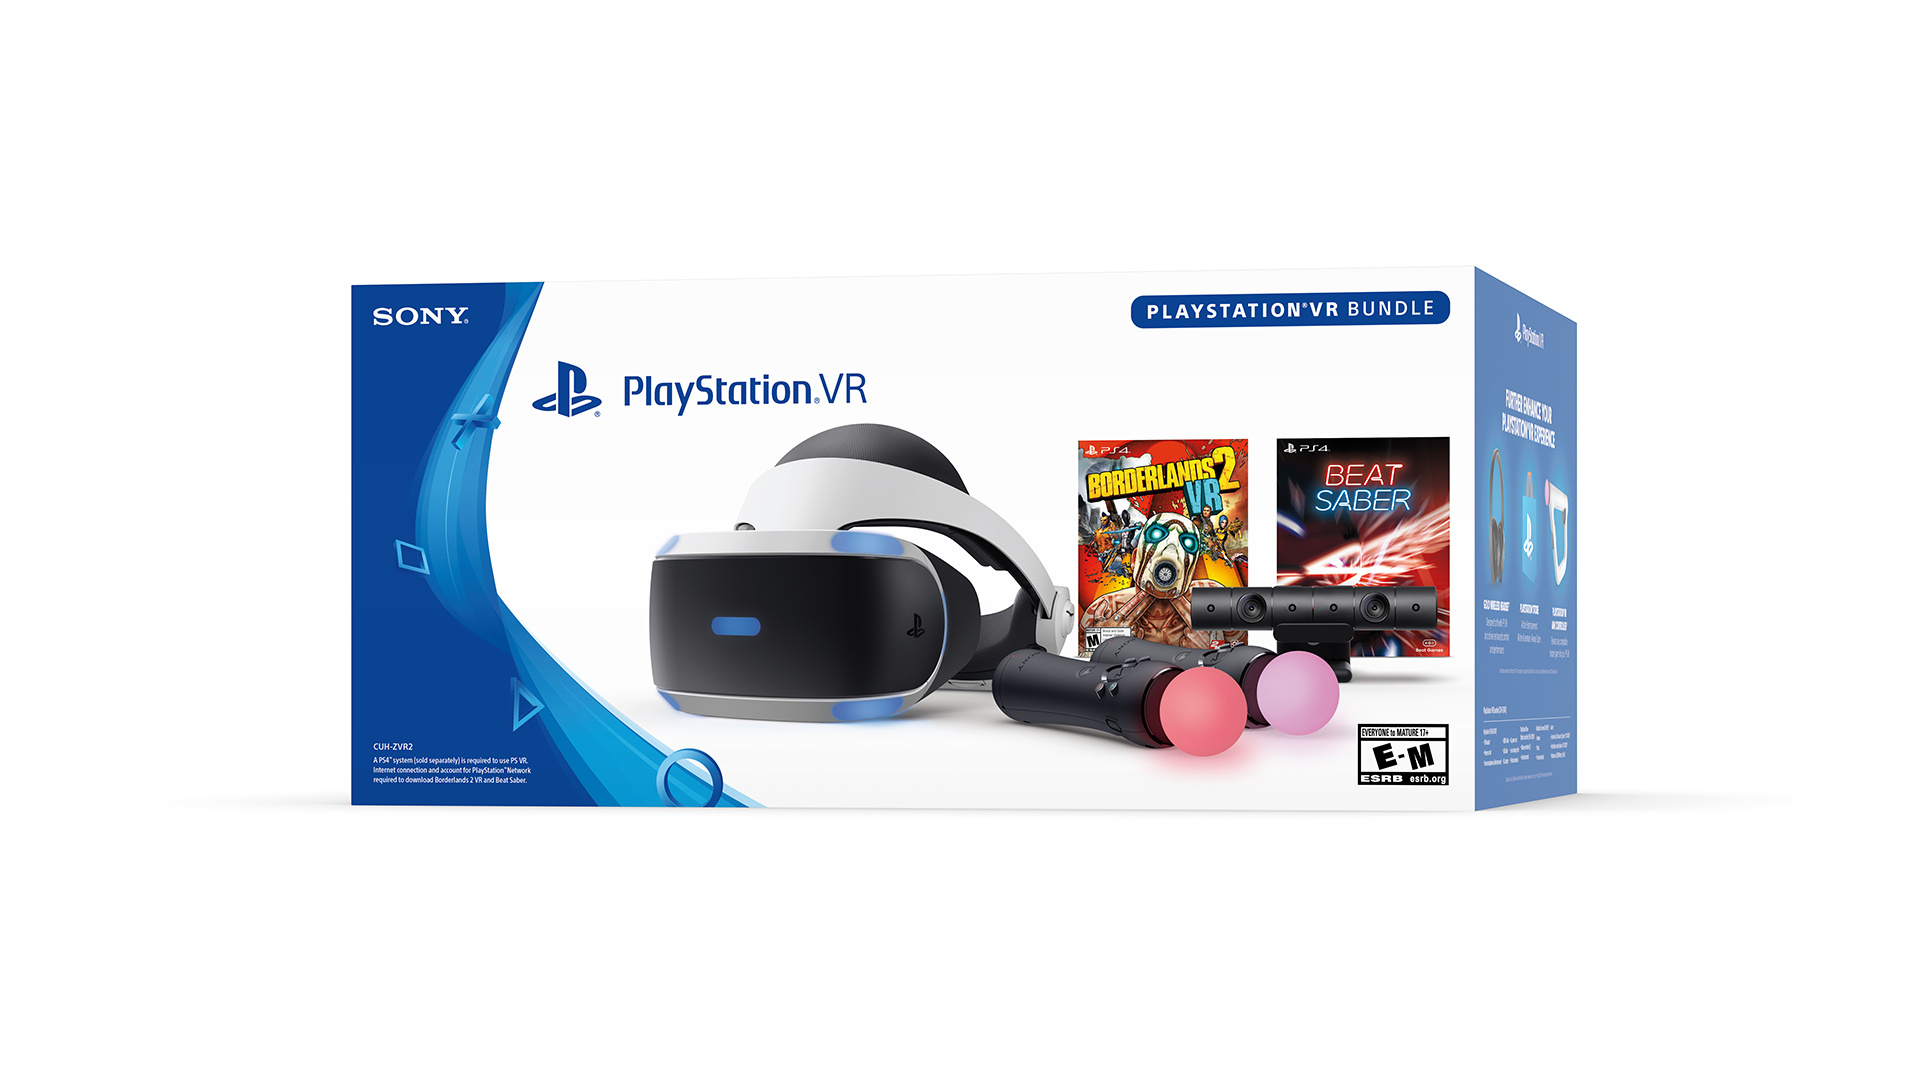 Sony Unveils New PSVR Bundle Featuring Borderlands 2 VR and